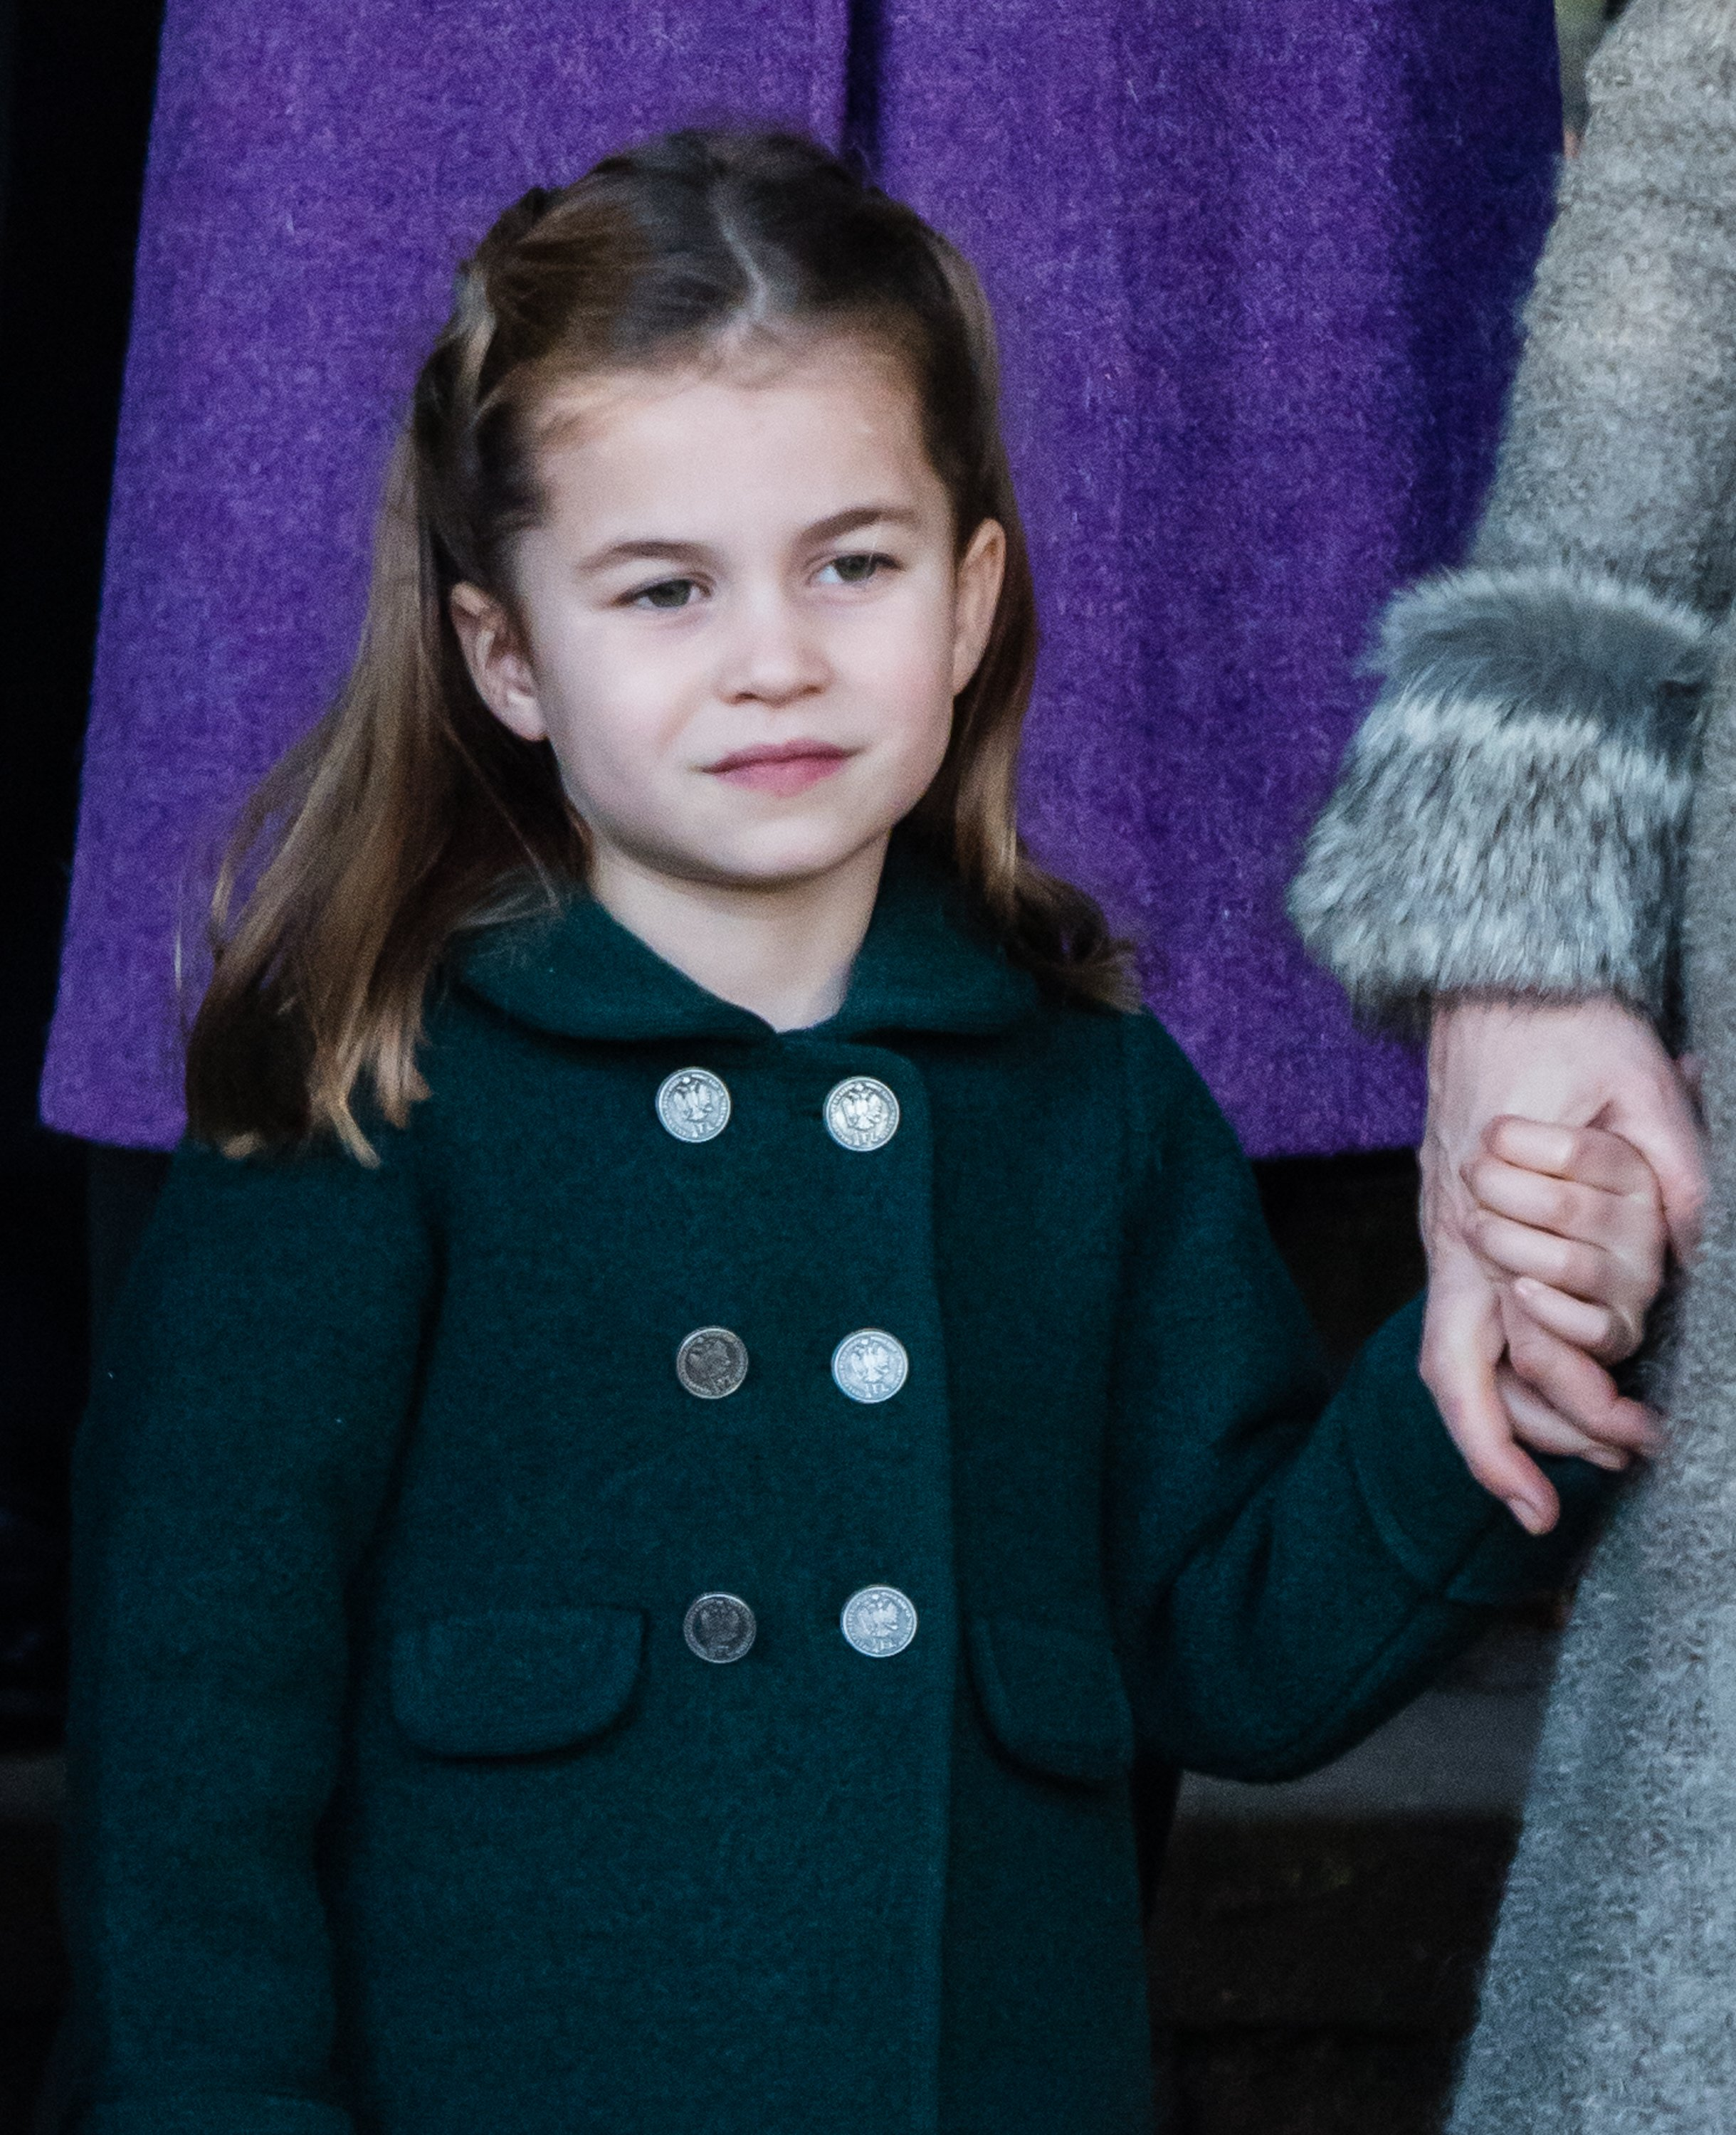 Princess Charlotte attends the Christmas Day Church Service on the Sandringham estate on December 25, 2019 | Photo: Getty Images